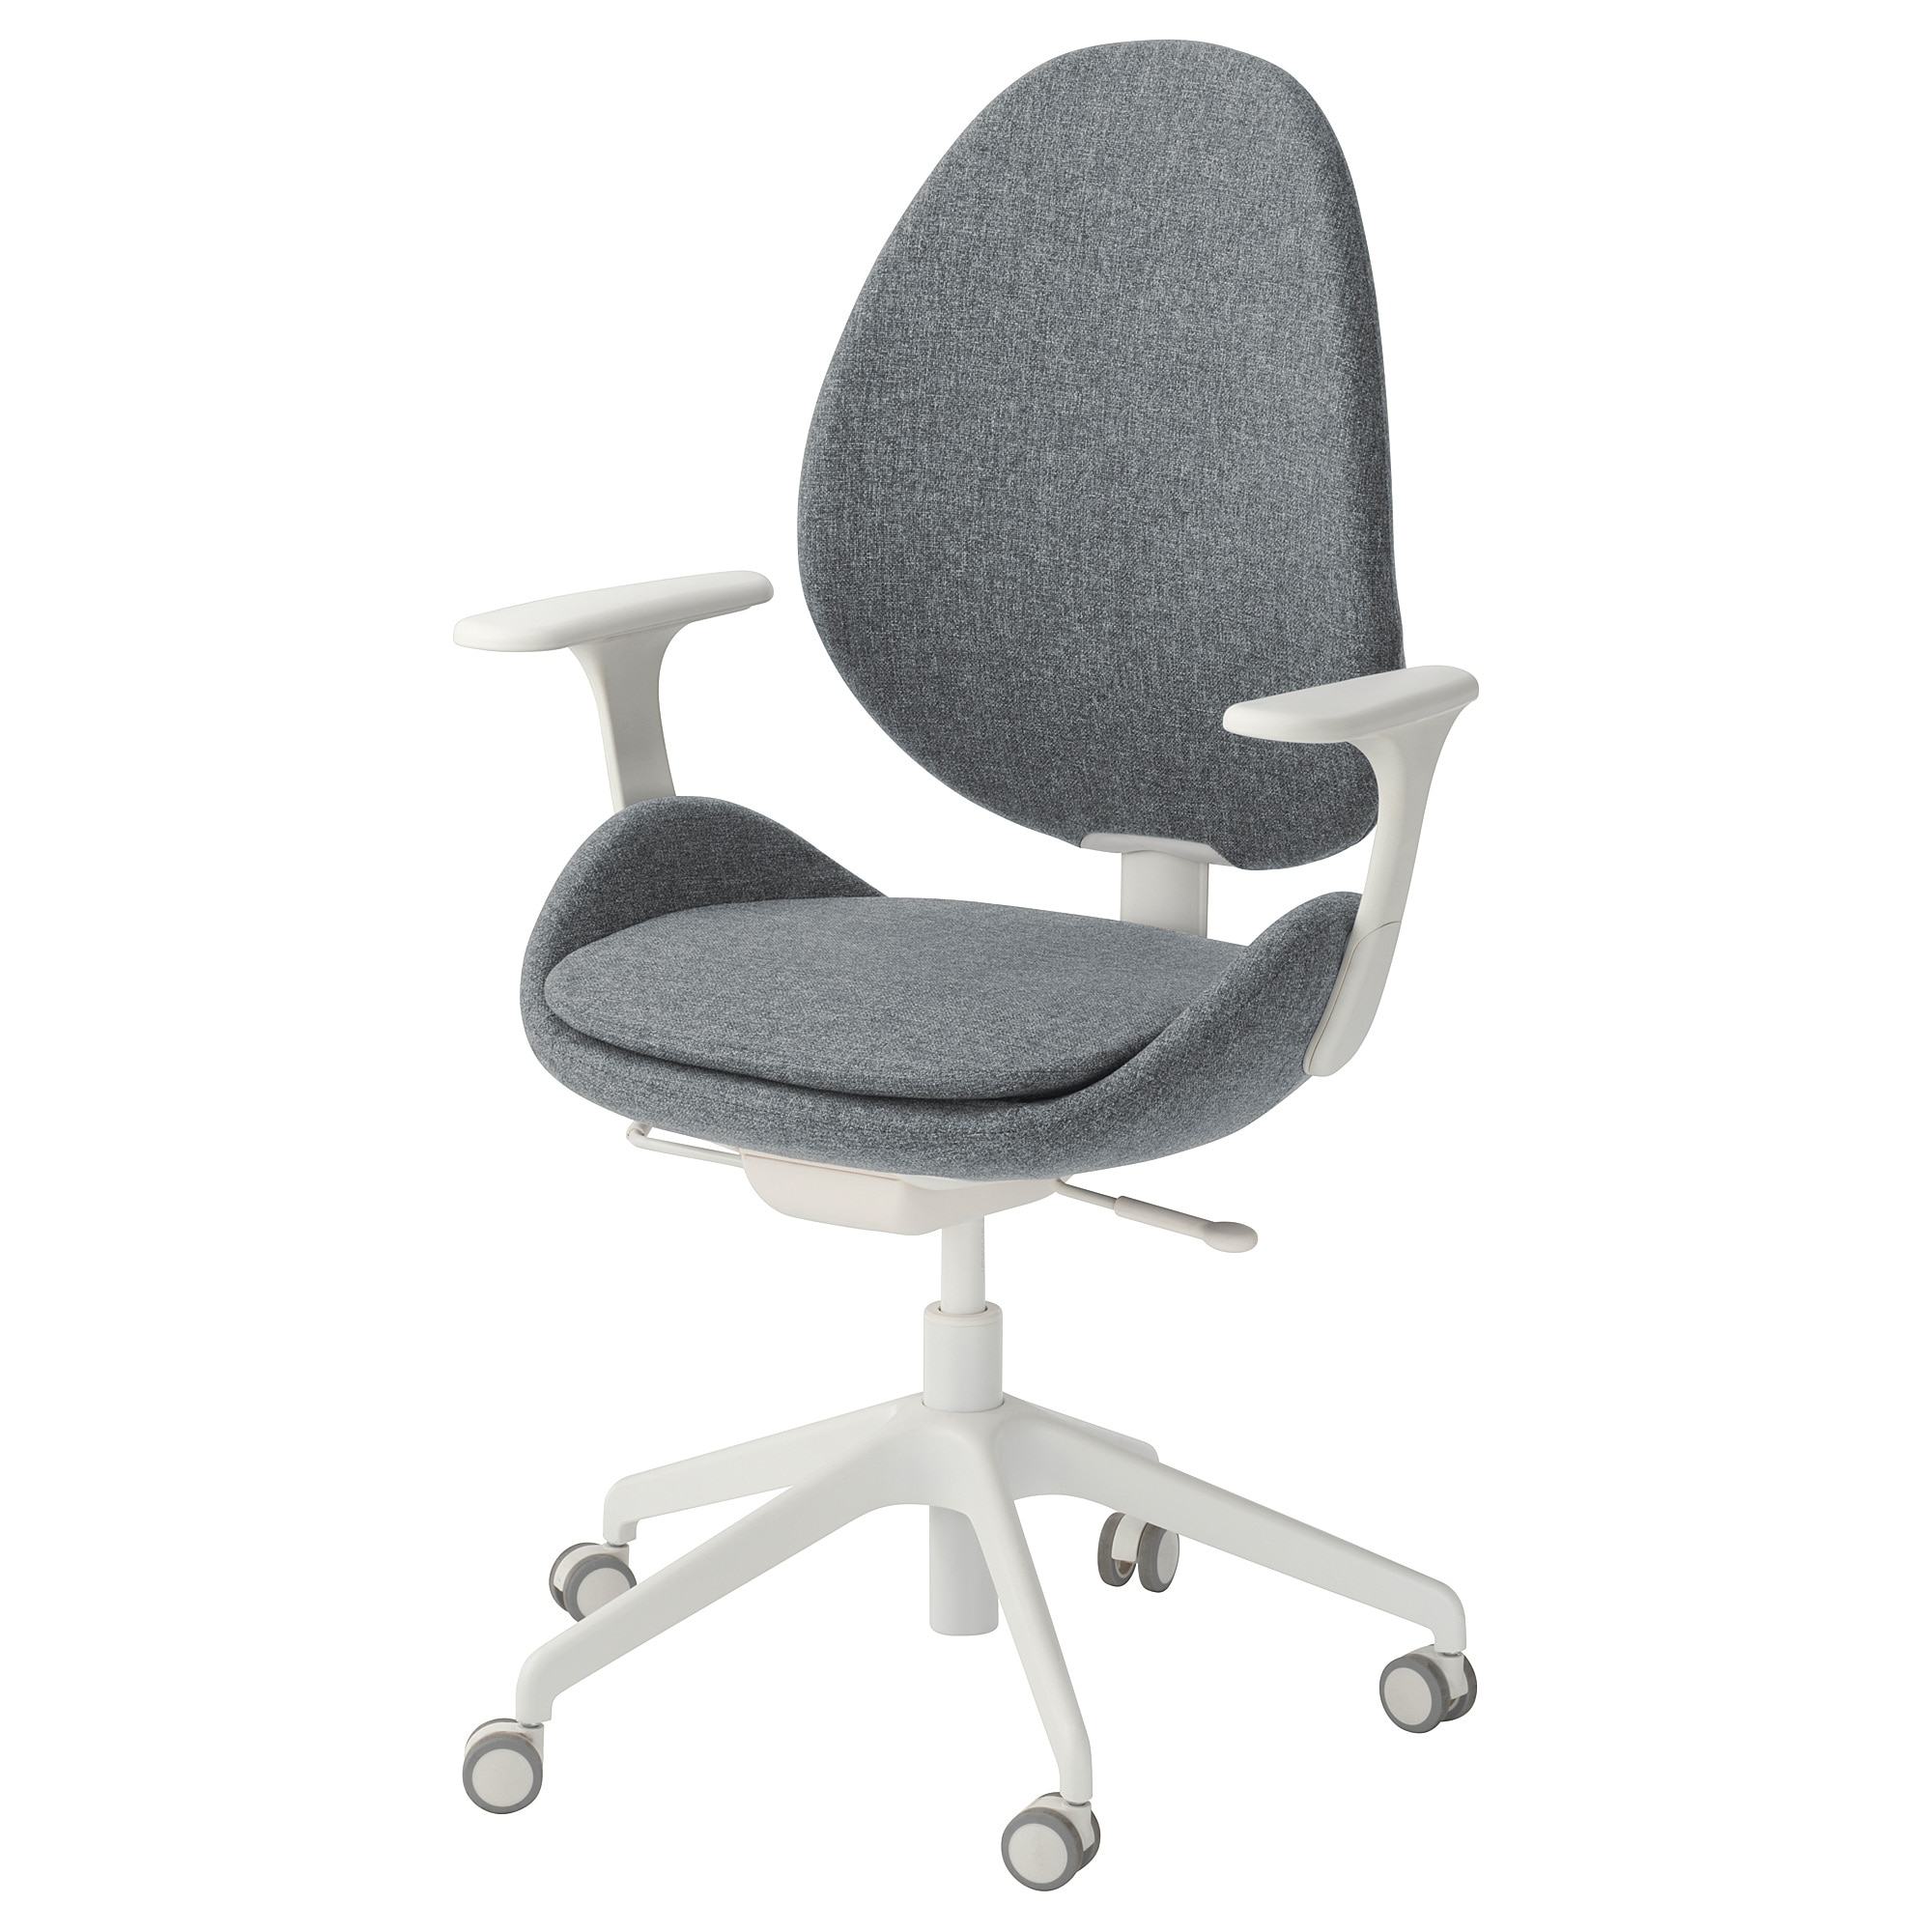 Hattefjäll Swivel Chair With Armrests Gunnared Medium Grey/white – Ikea Intended For Grey Swivel Chairs (View 18 of 20)